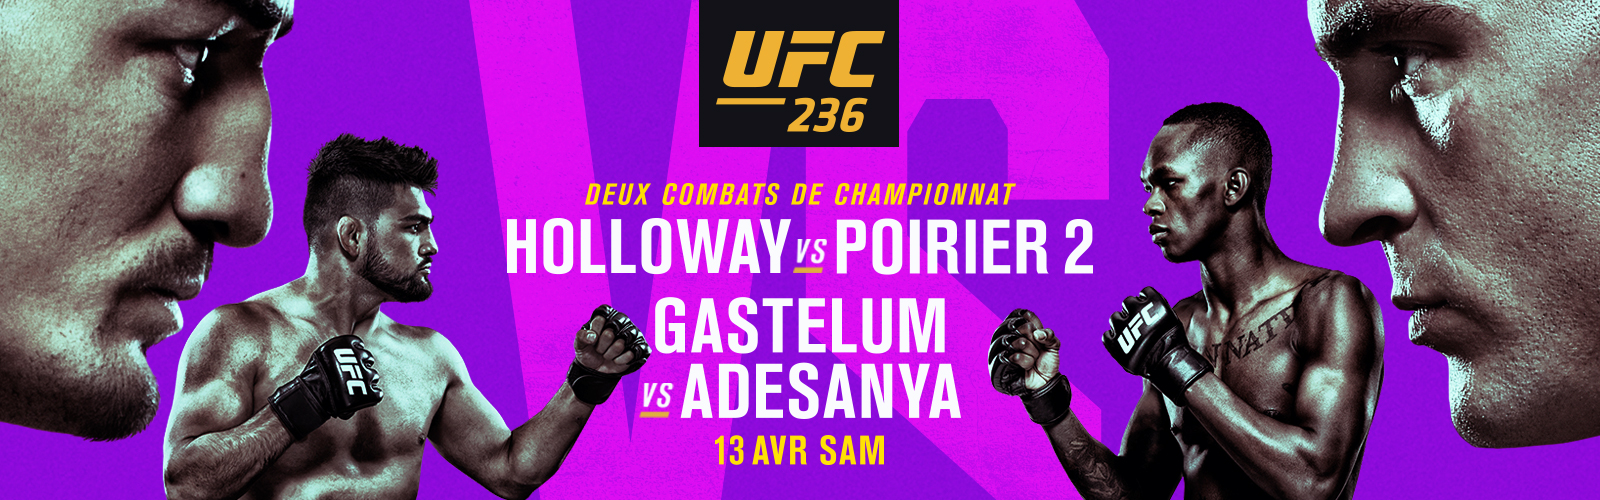 UFC 236 - Holloway vs Poirier 2